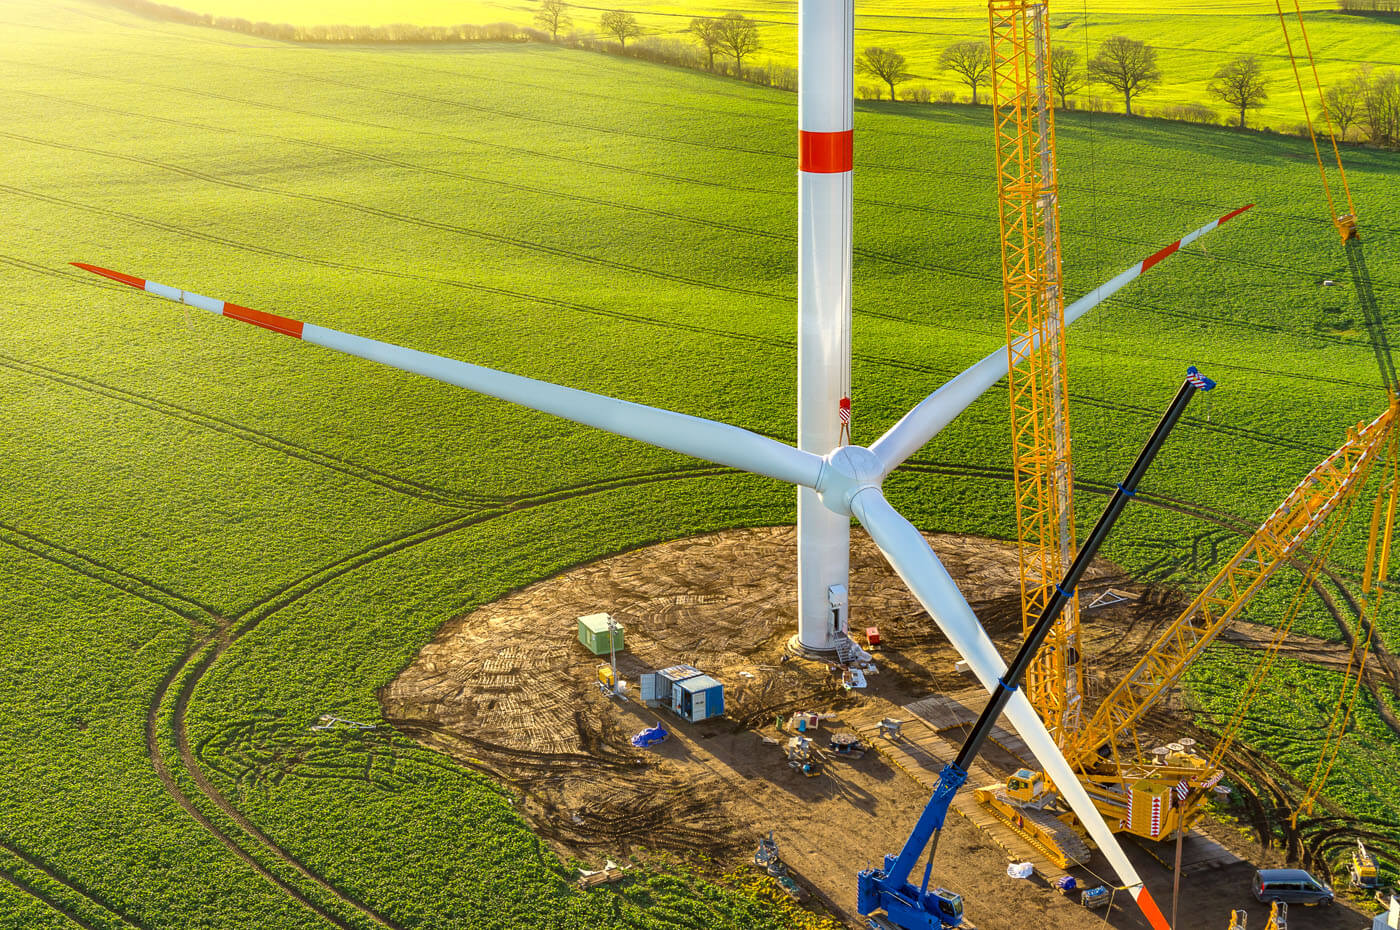 A wind turbine is constructed on a bright green field.